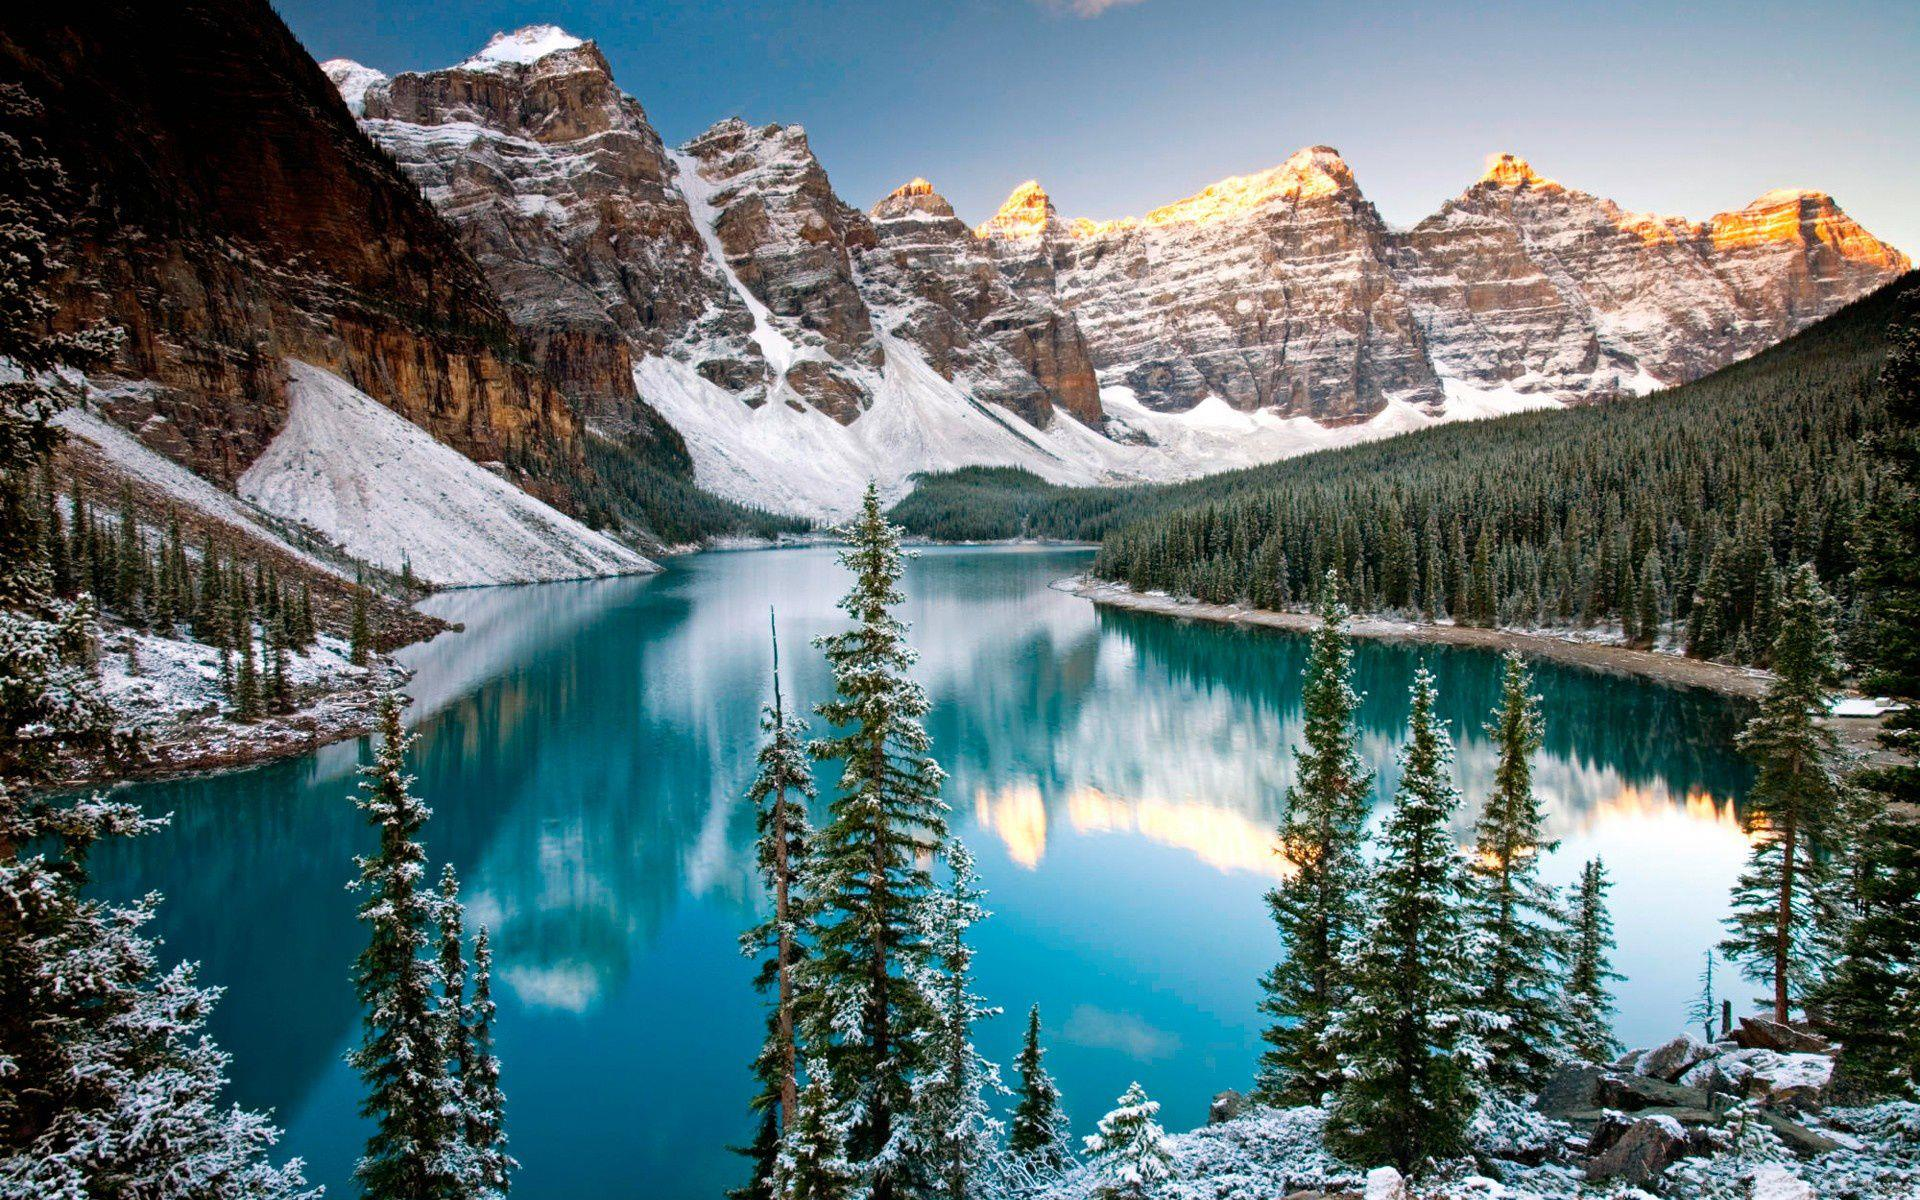 Camp and Hike Valley of the Ten Peaks.